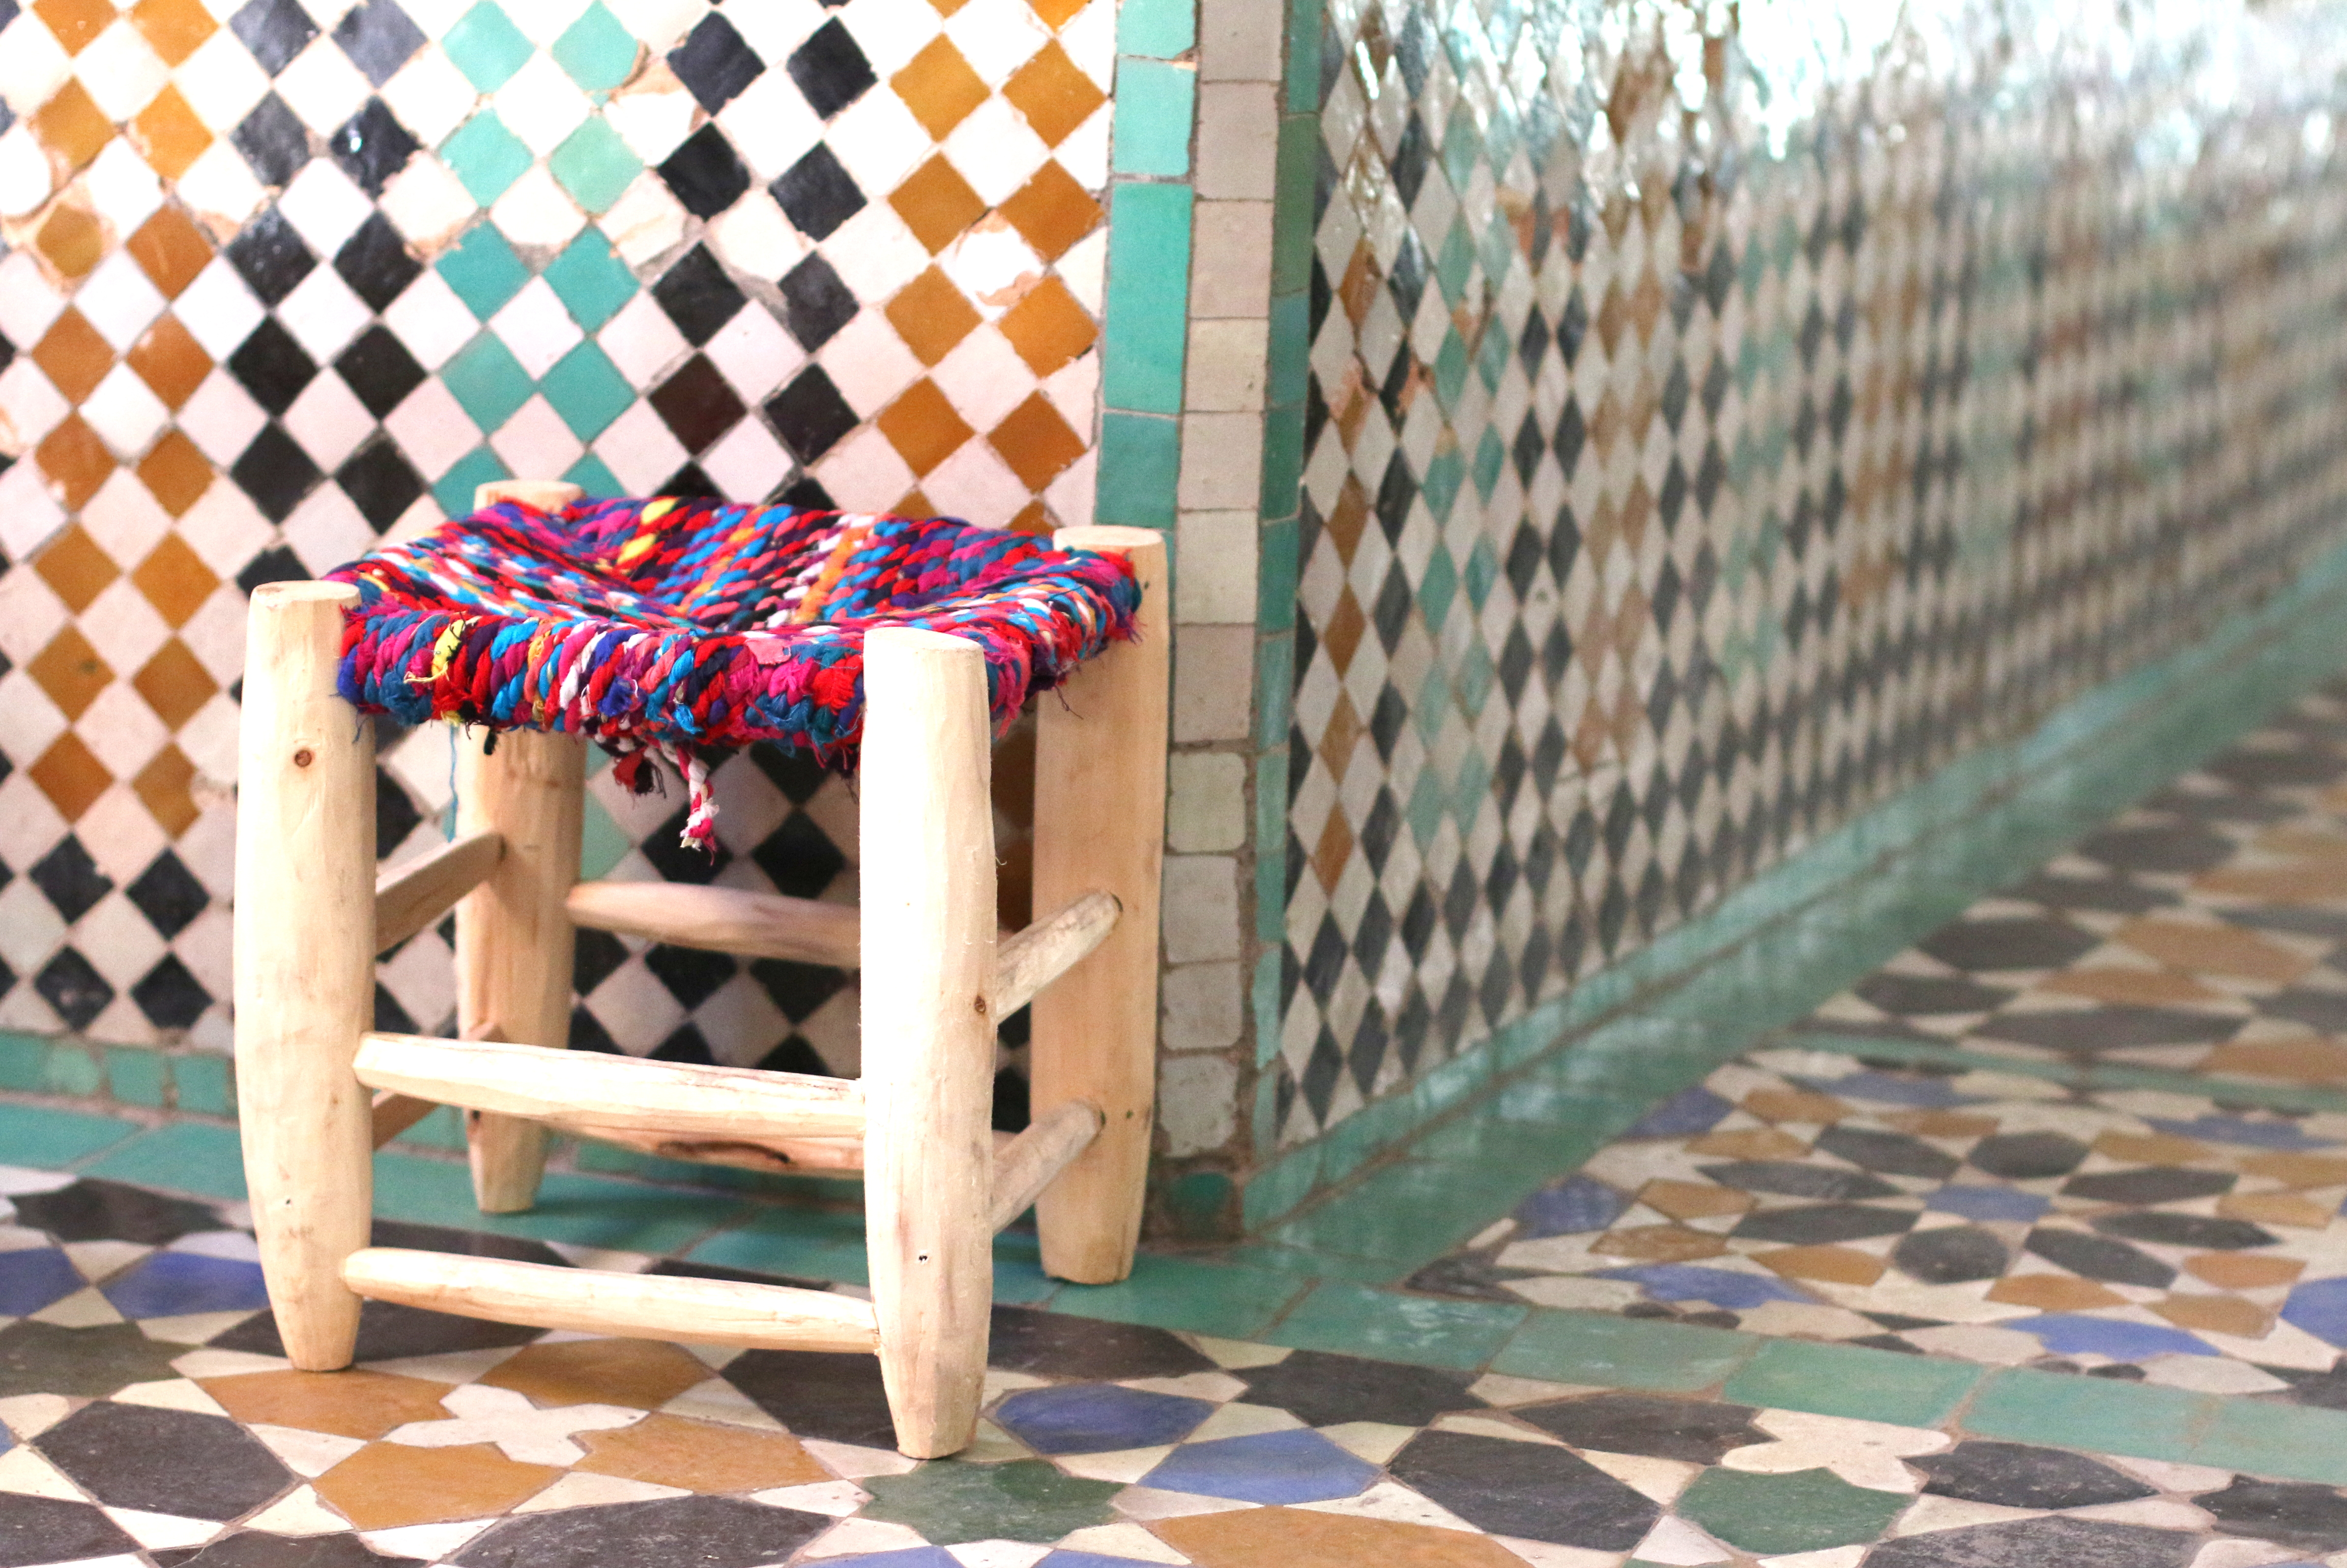 marrakech travel guide medersa ben youssef travel blog reiseblog